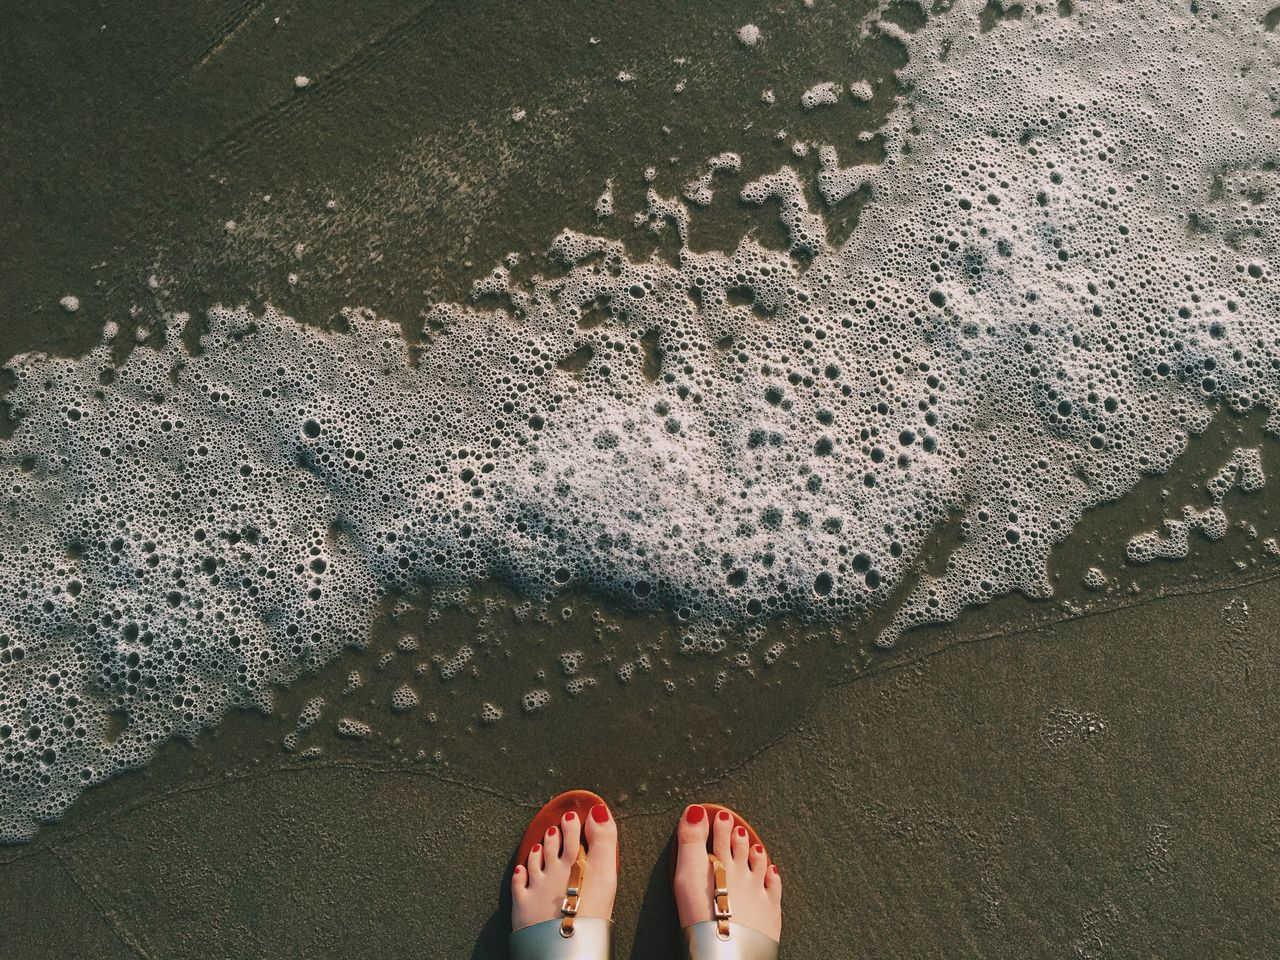 Feet Waves Bubbles Beach Sand Ocean VSCO Vscocam Vscogood Sea Hyatt Regency Hyatt Da Nang Vietnam Feet Showcase March Summer Traveling